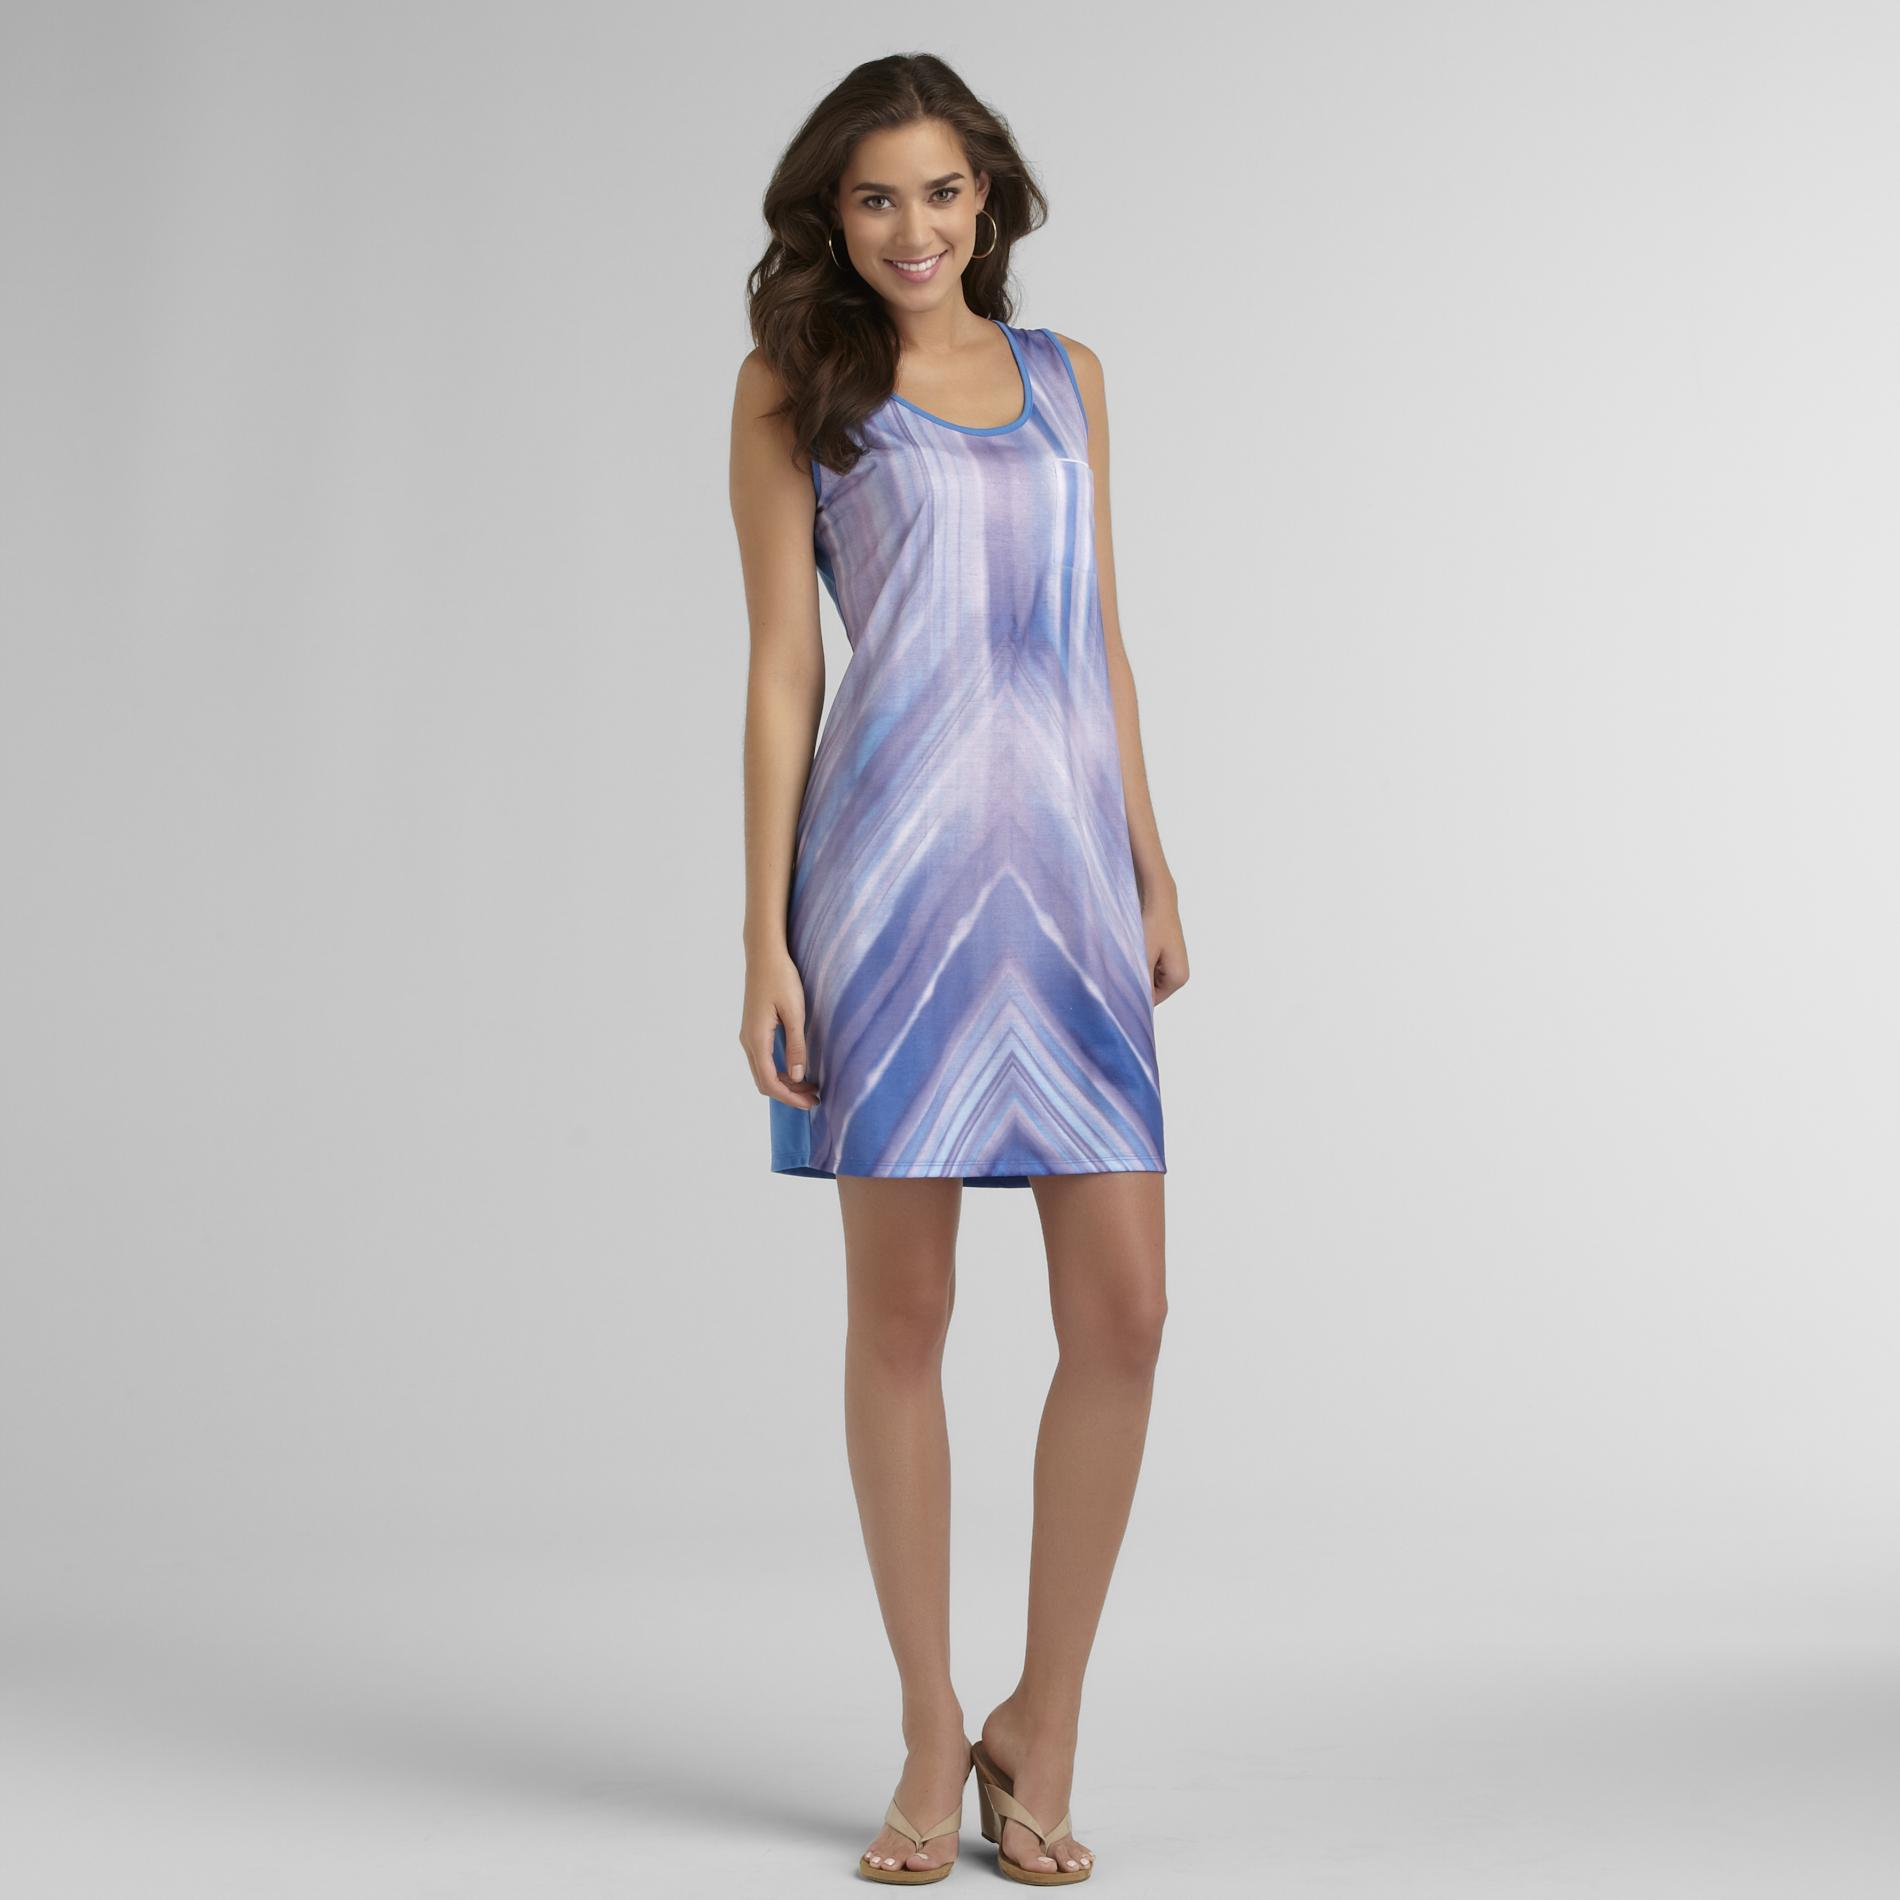 Route 66 Women's Tank Dress - Gradient Stripes at Kmart.com